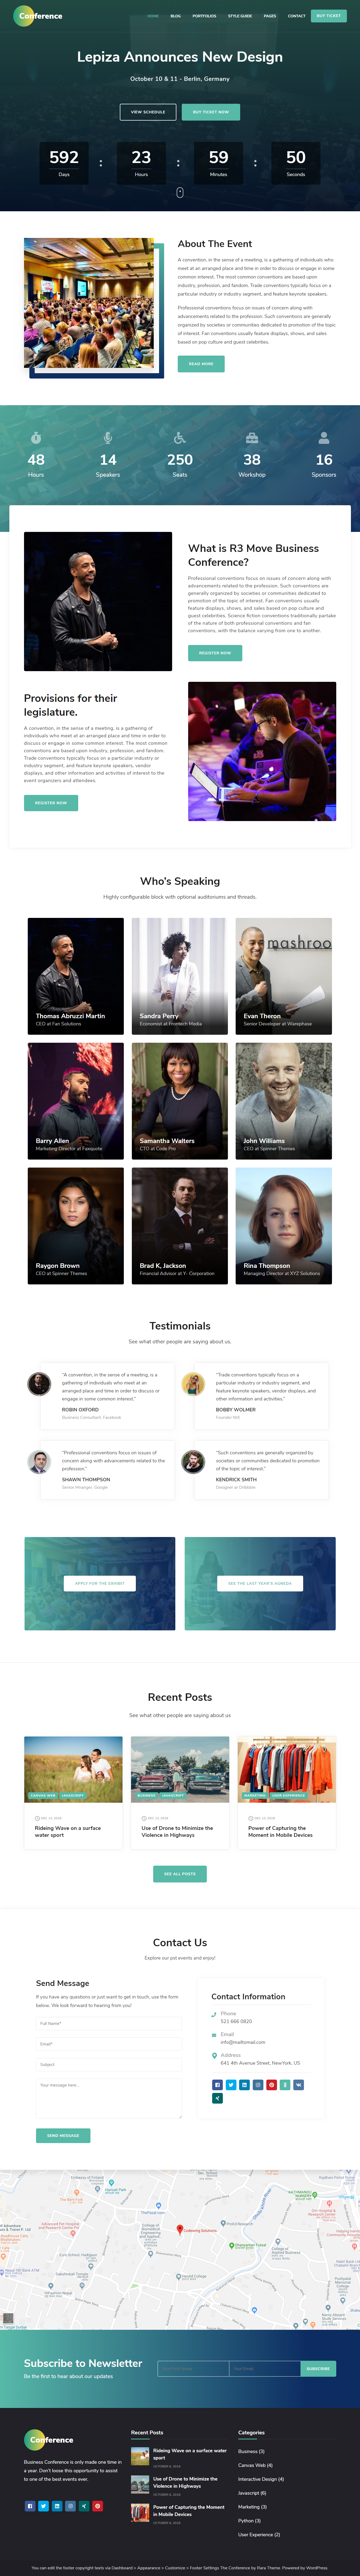 the conference best free seo agency wordpress theme - 10+ Best Free SEO Agency WordPress Themes